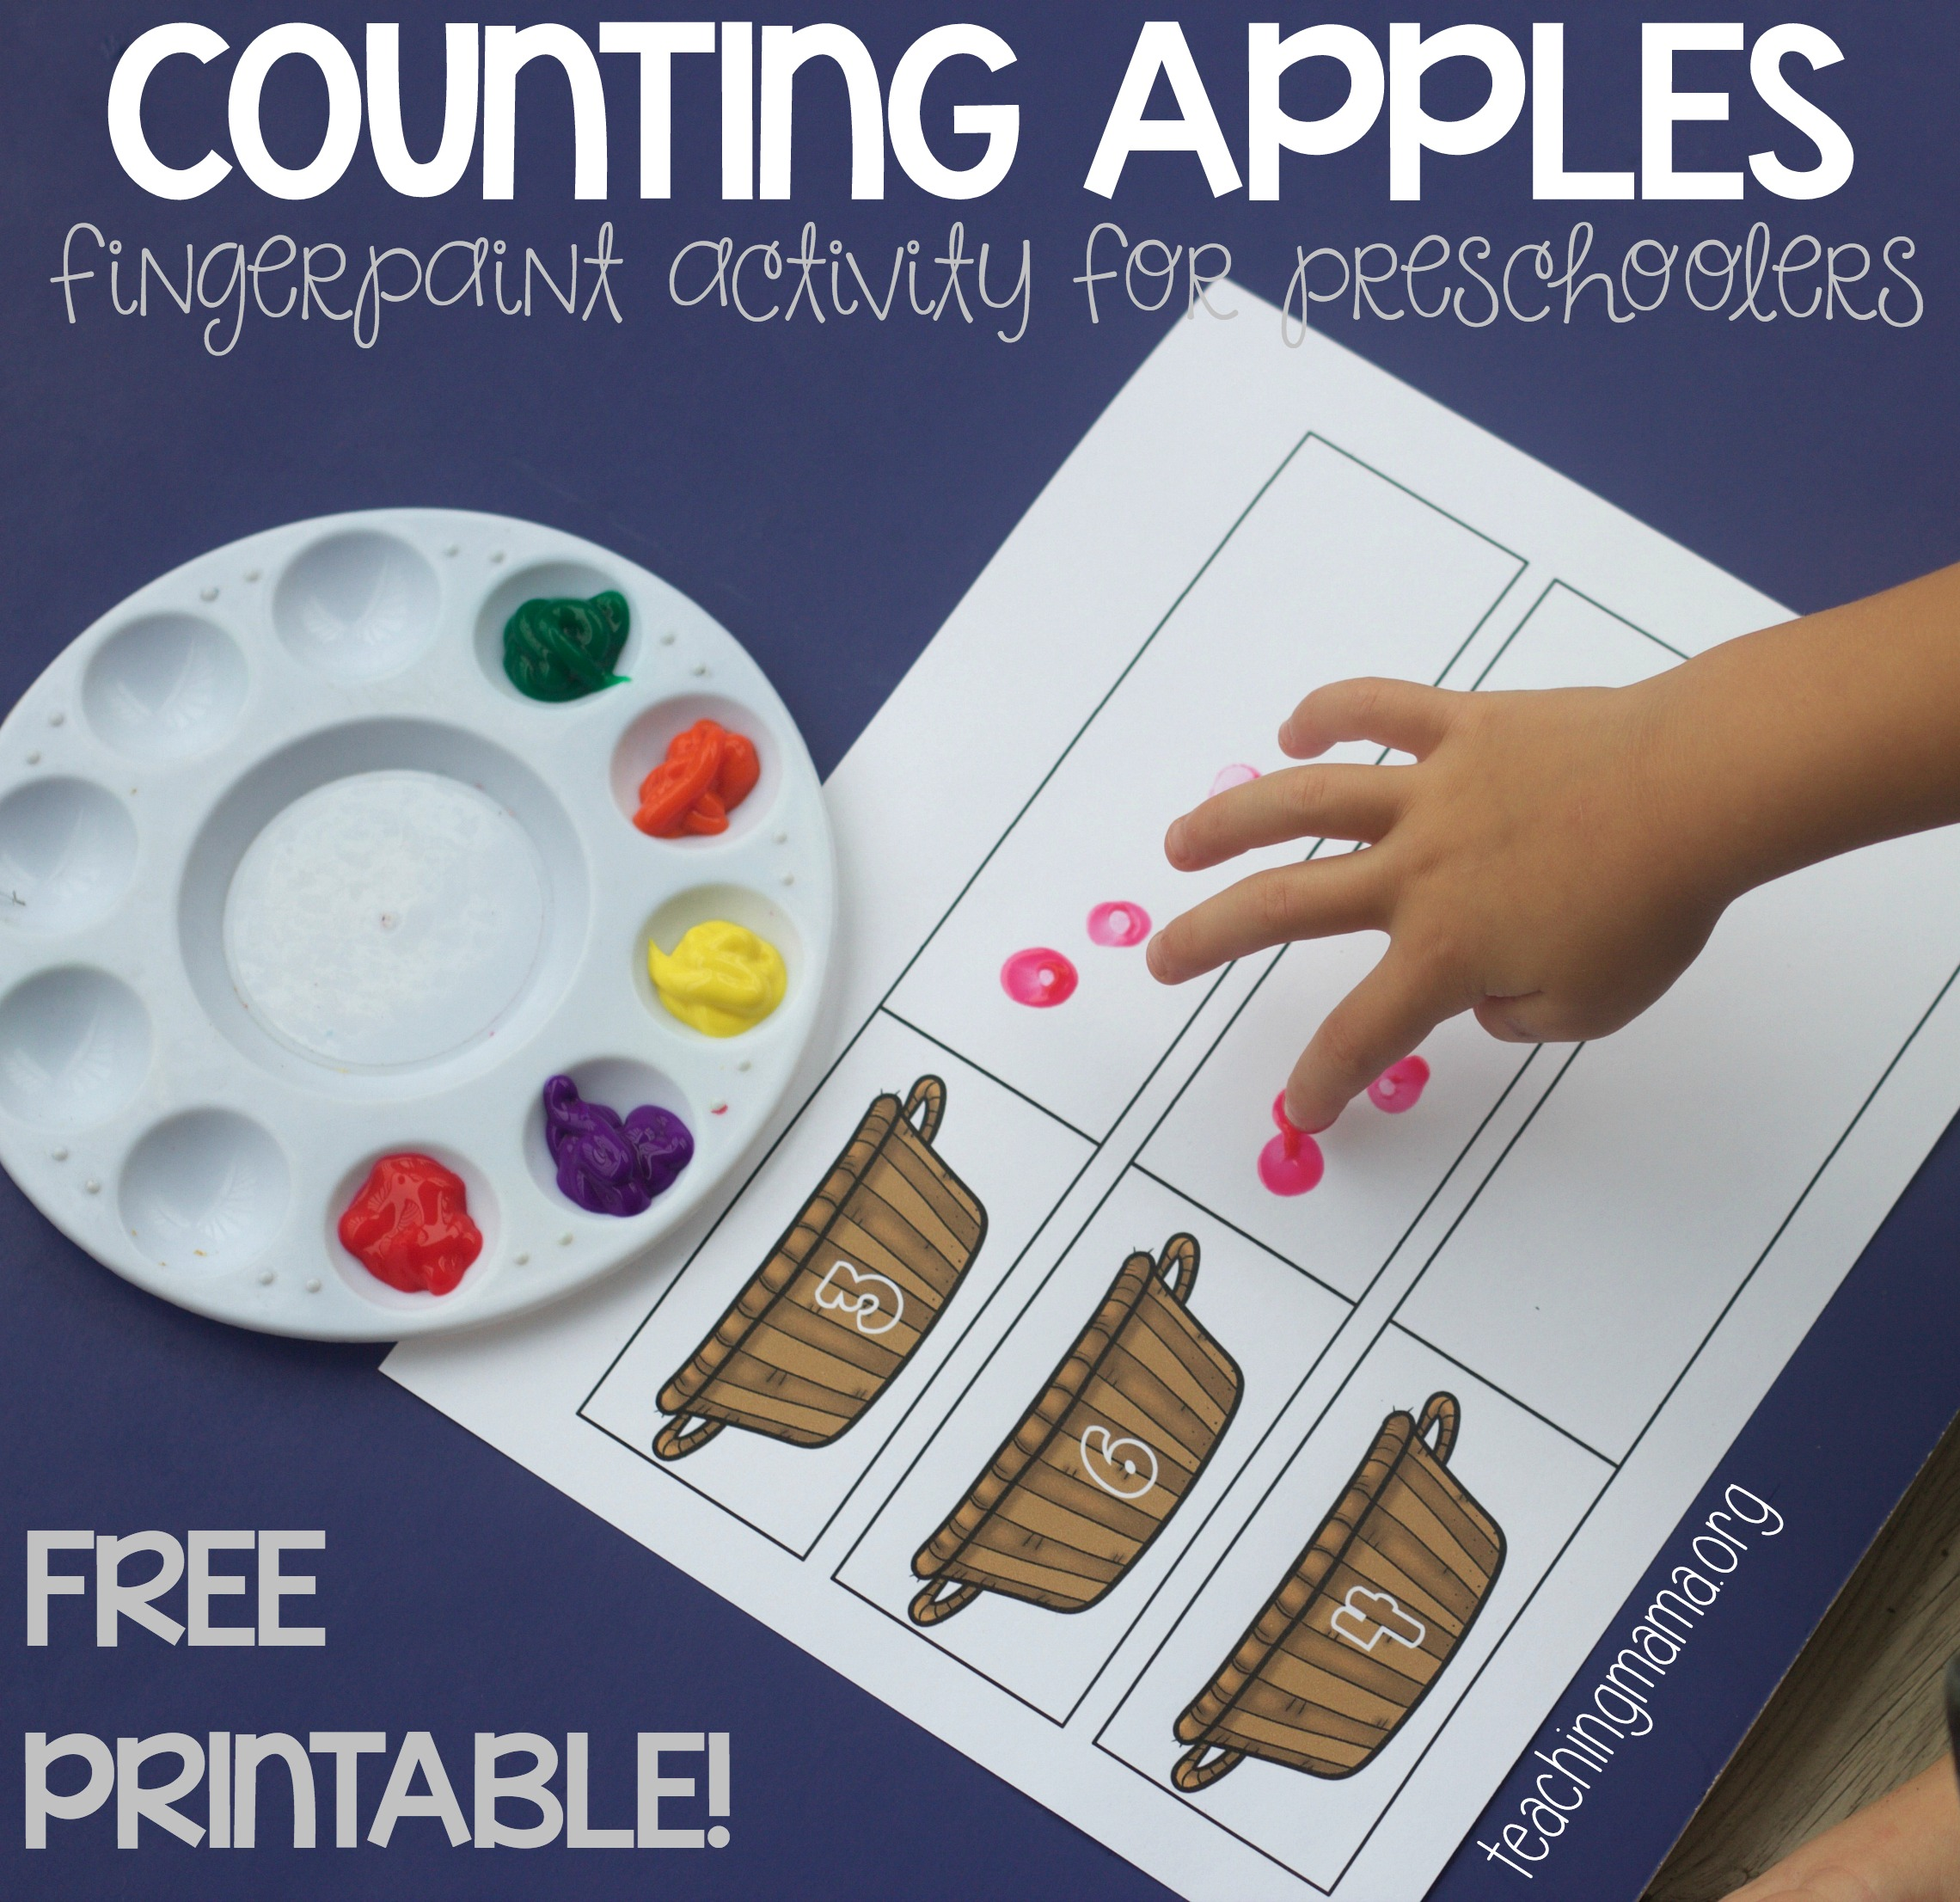 counting-apples-activity-fb